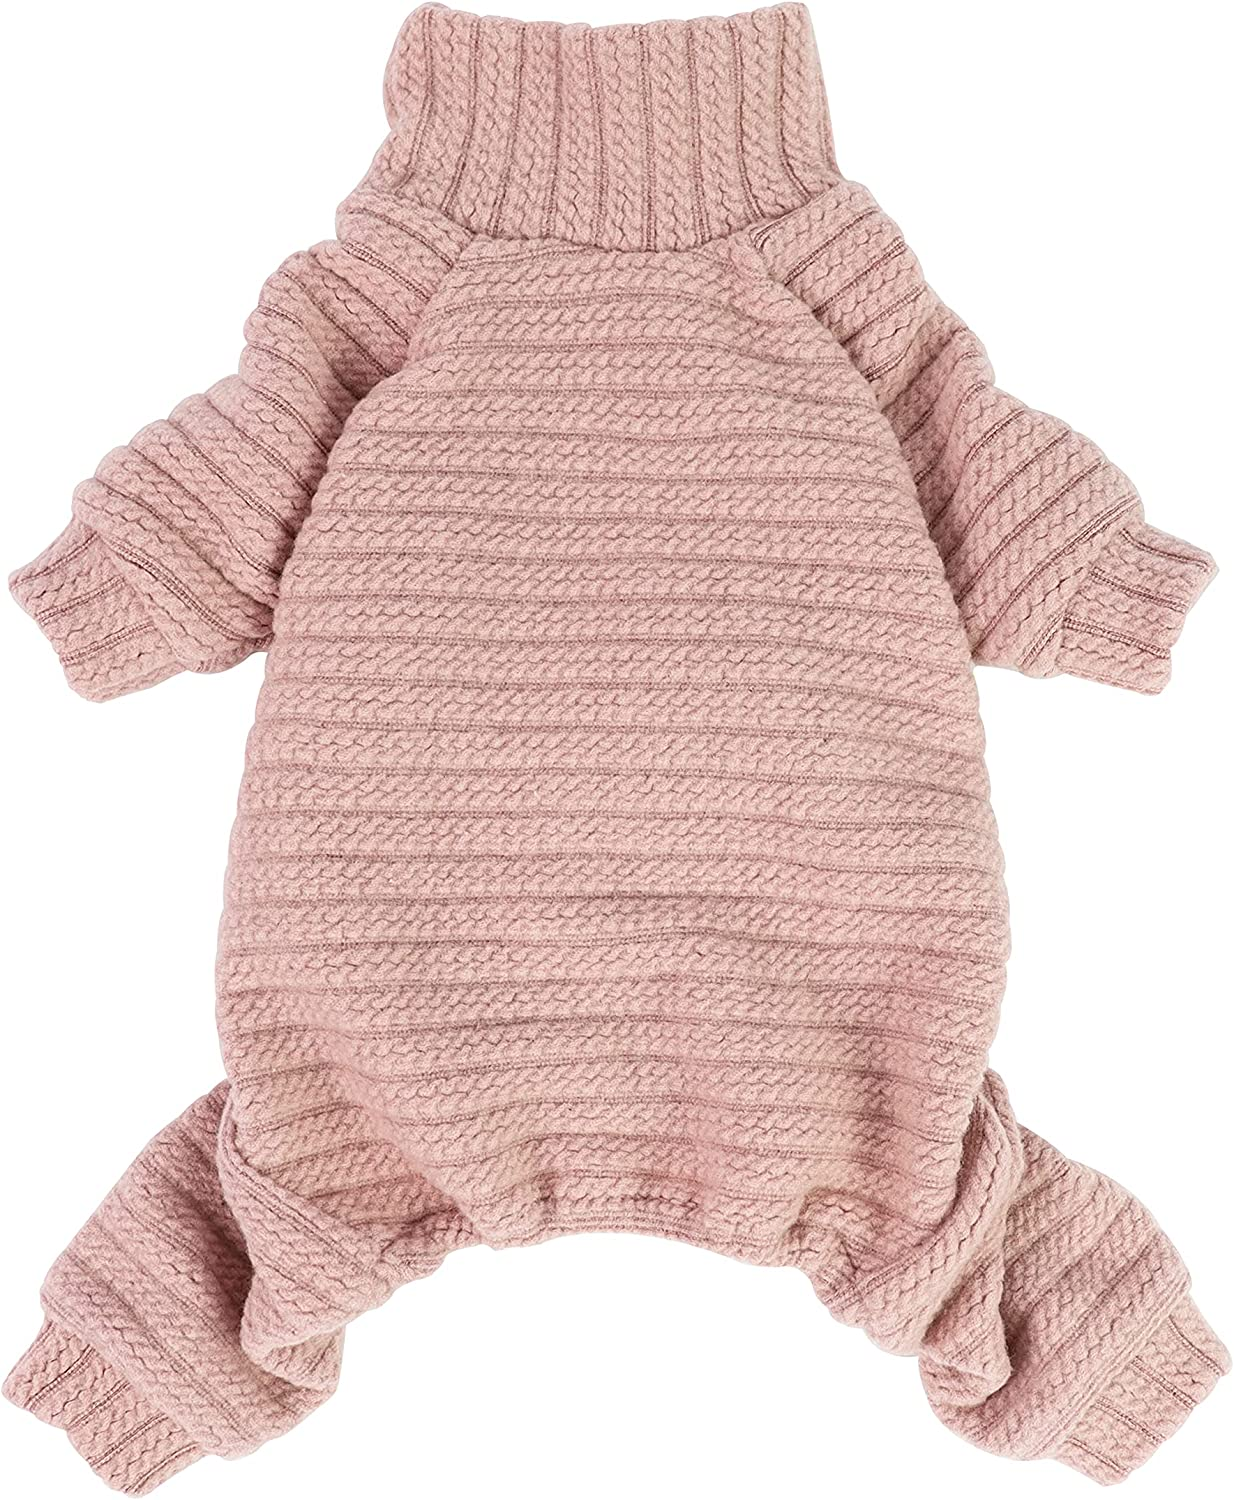 Fitwarm Turtleneck Knitted Dog Sweater Thermal Pajamas Super Special SALE held Puppy 67% OFF of fixed price